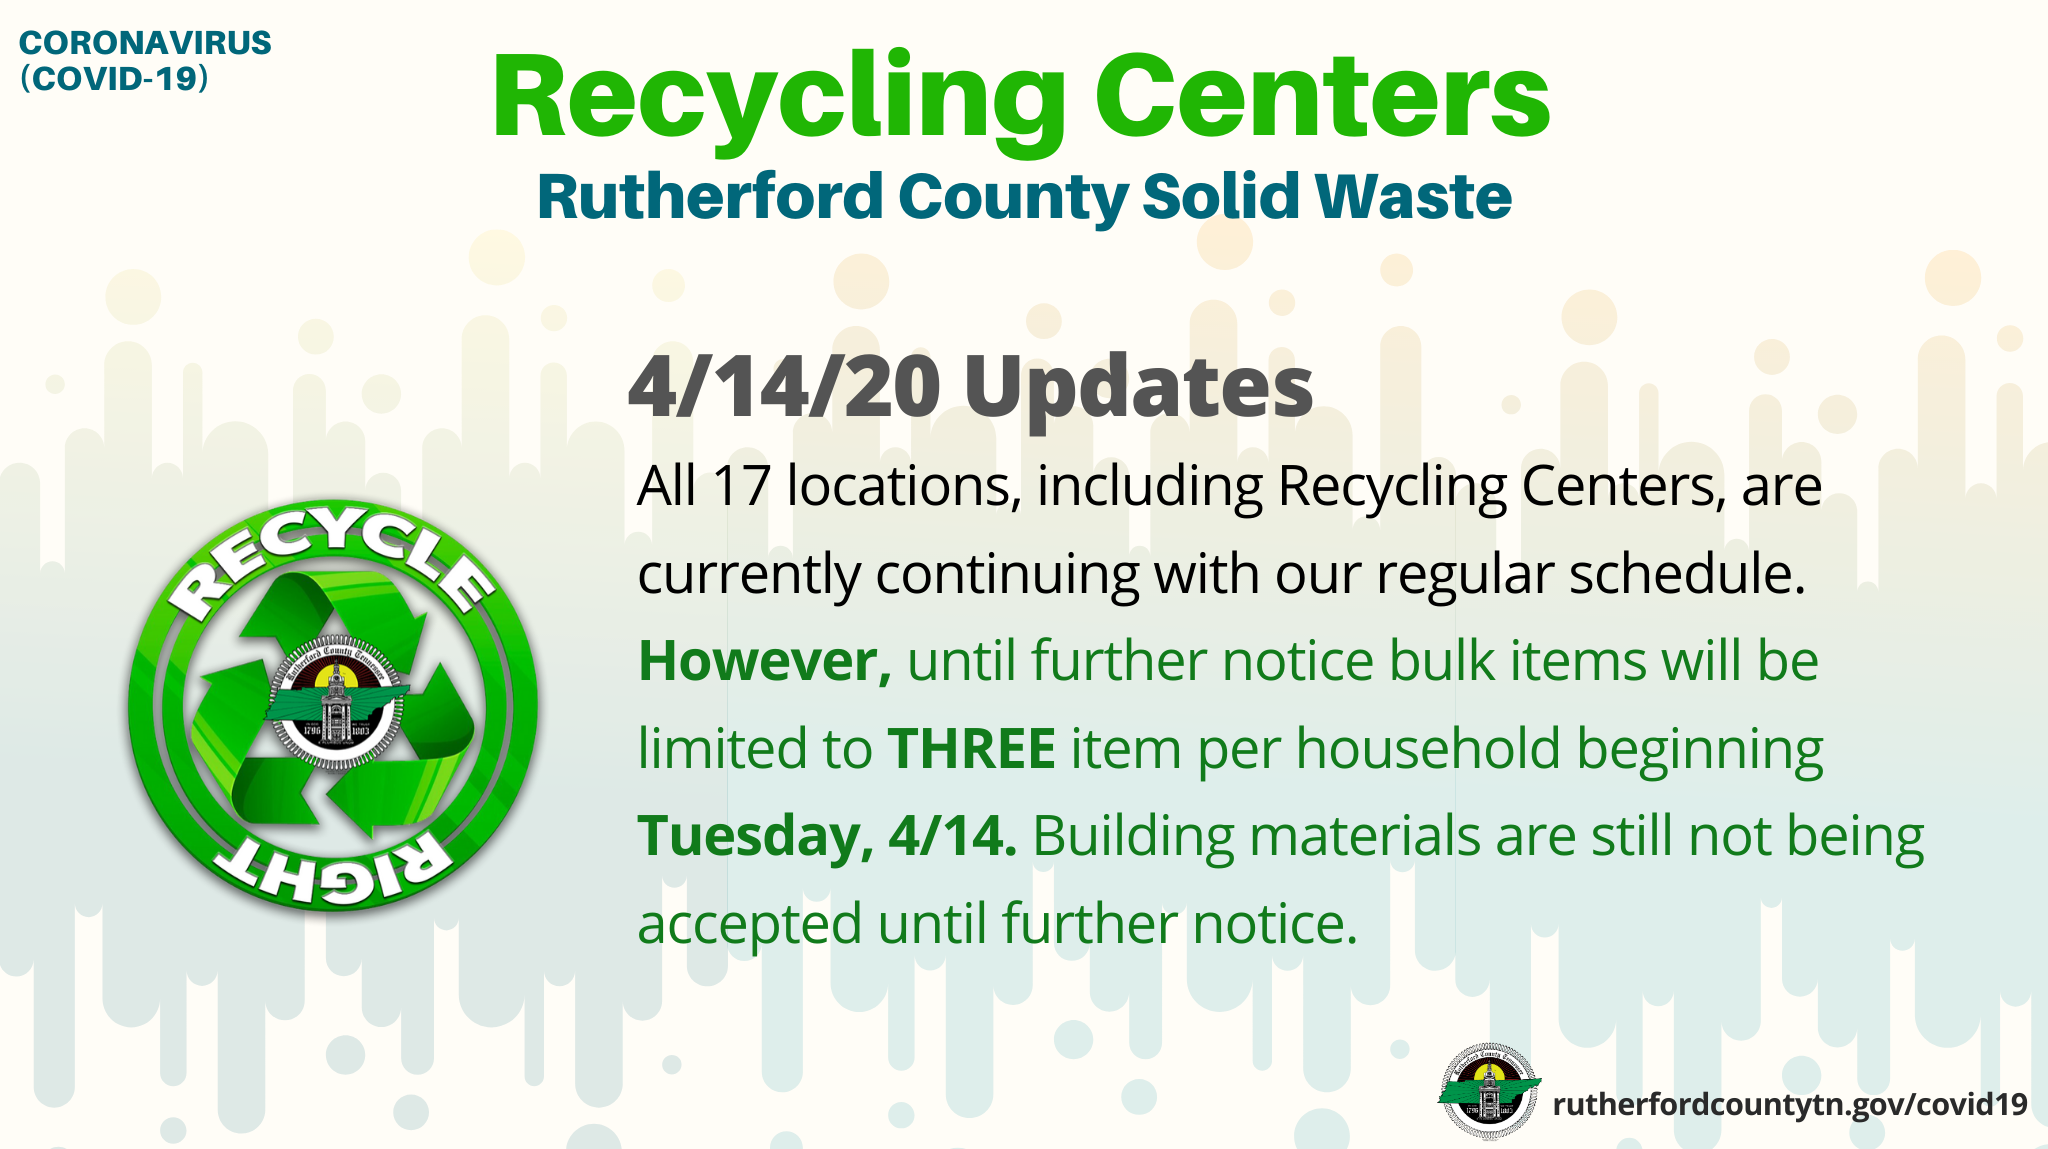 Beginning Tuesday, April 14, 2020, convenience centers in Rutherford County will now accept up to three (bulk) items per household each day. Building materials are still not being accepted.